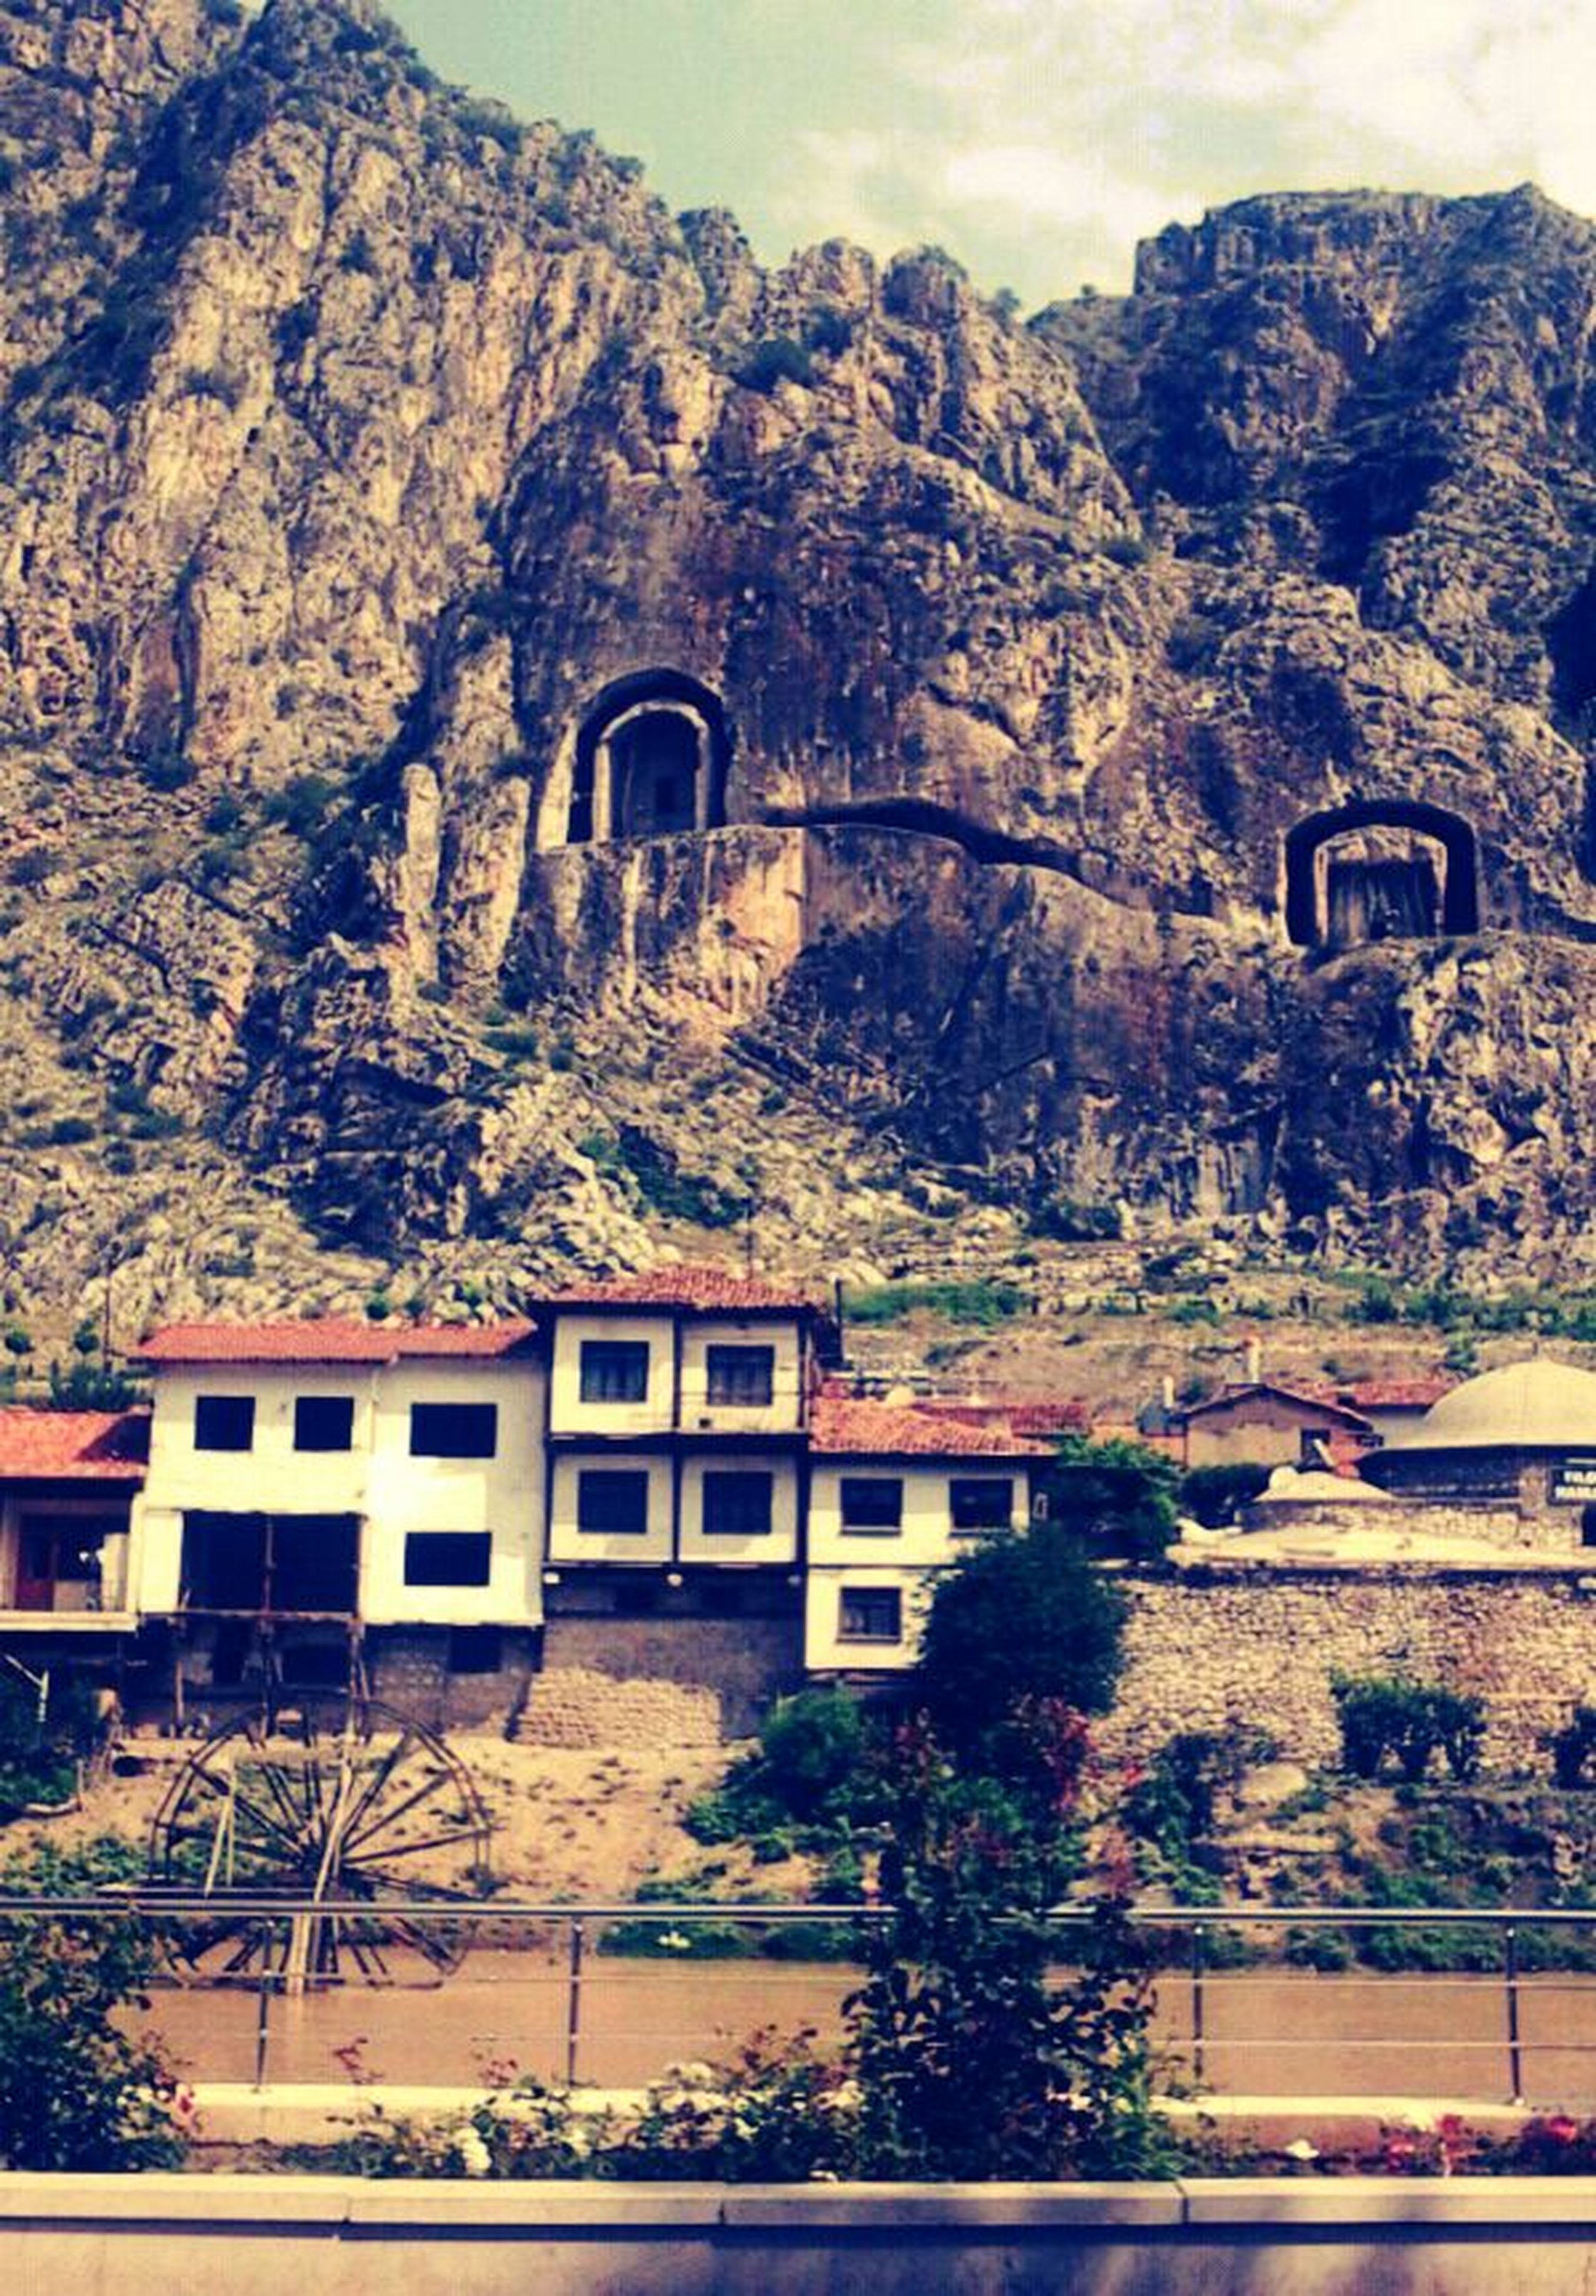 architecture, built structure, building exterior, tree, mountain, sky, arch, house, day, outdoors, nature, residential structure, no people, history, travel destinations, residential building, old, town, travel, growth